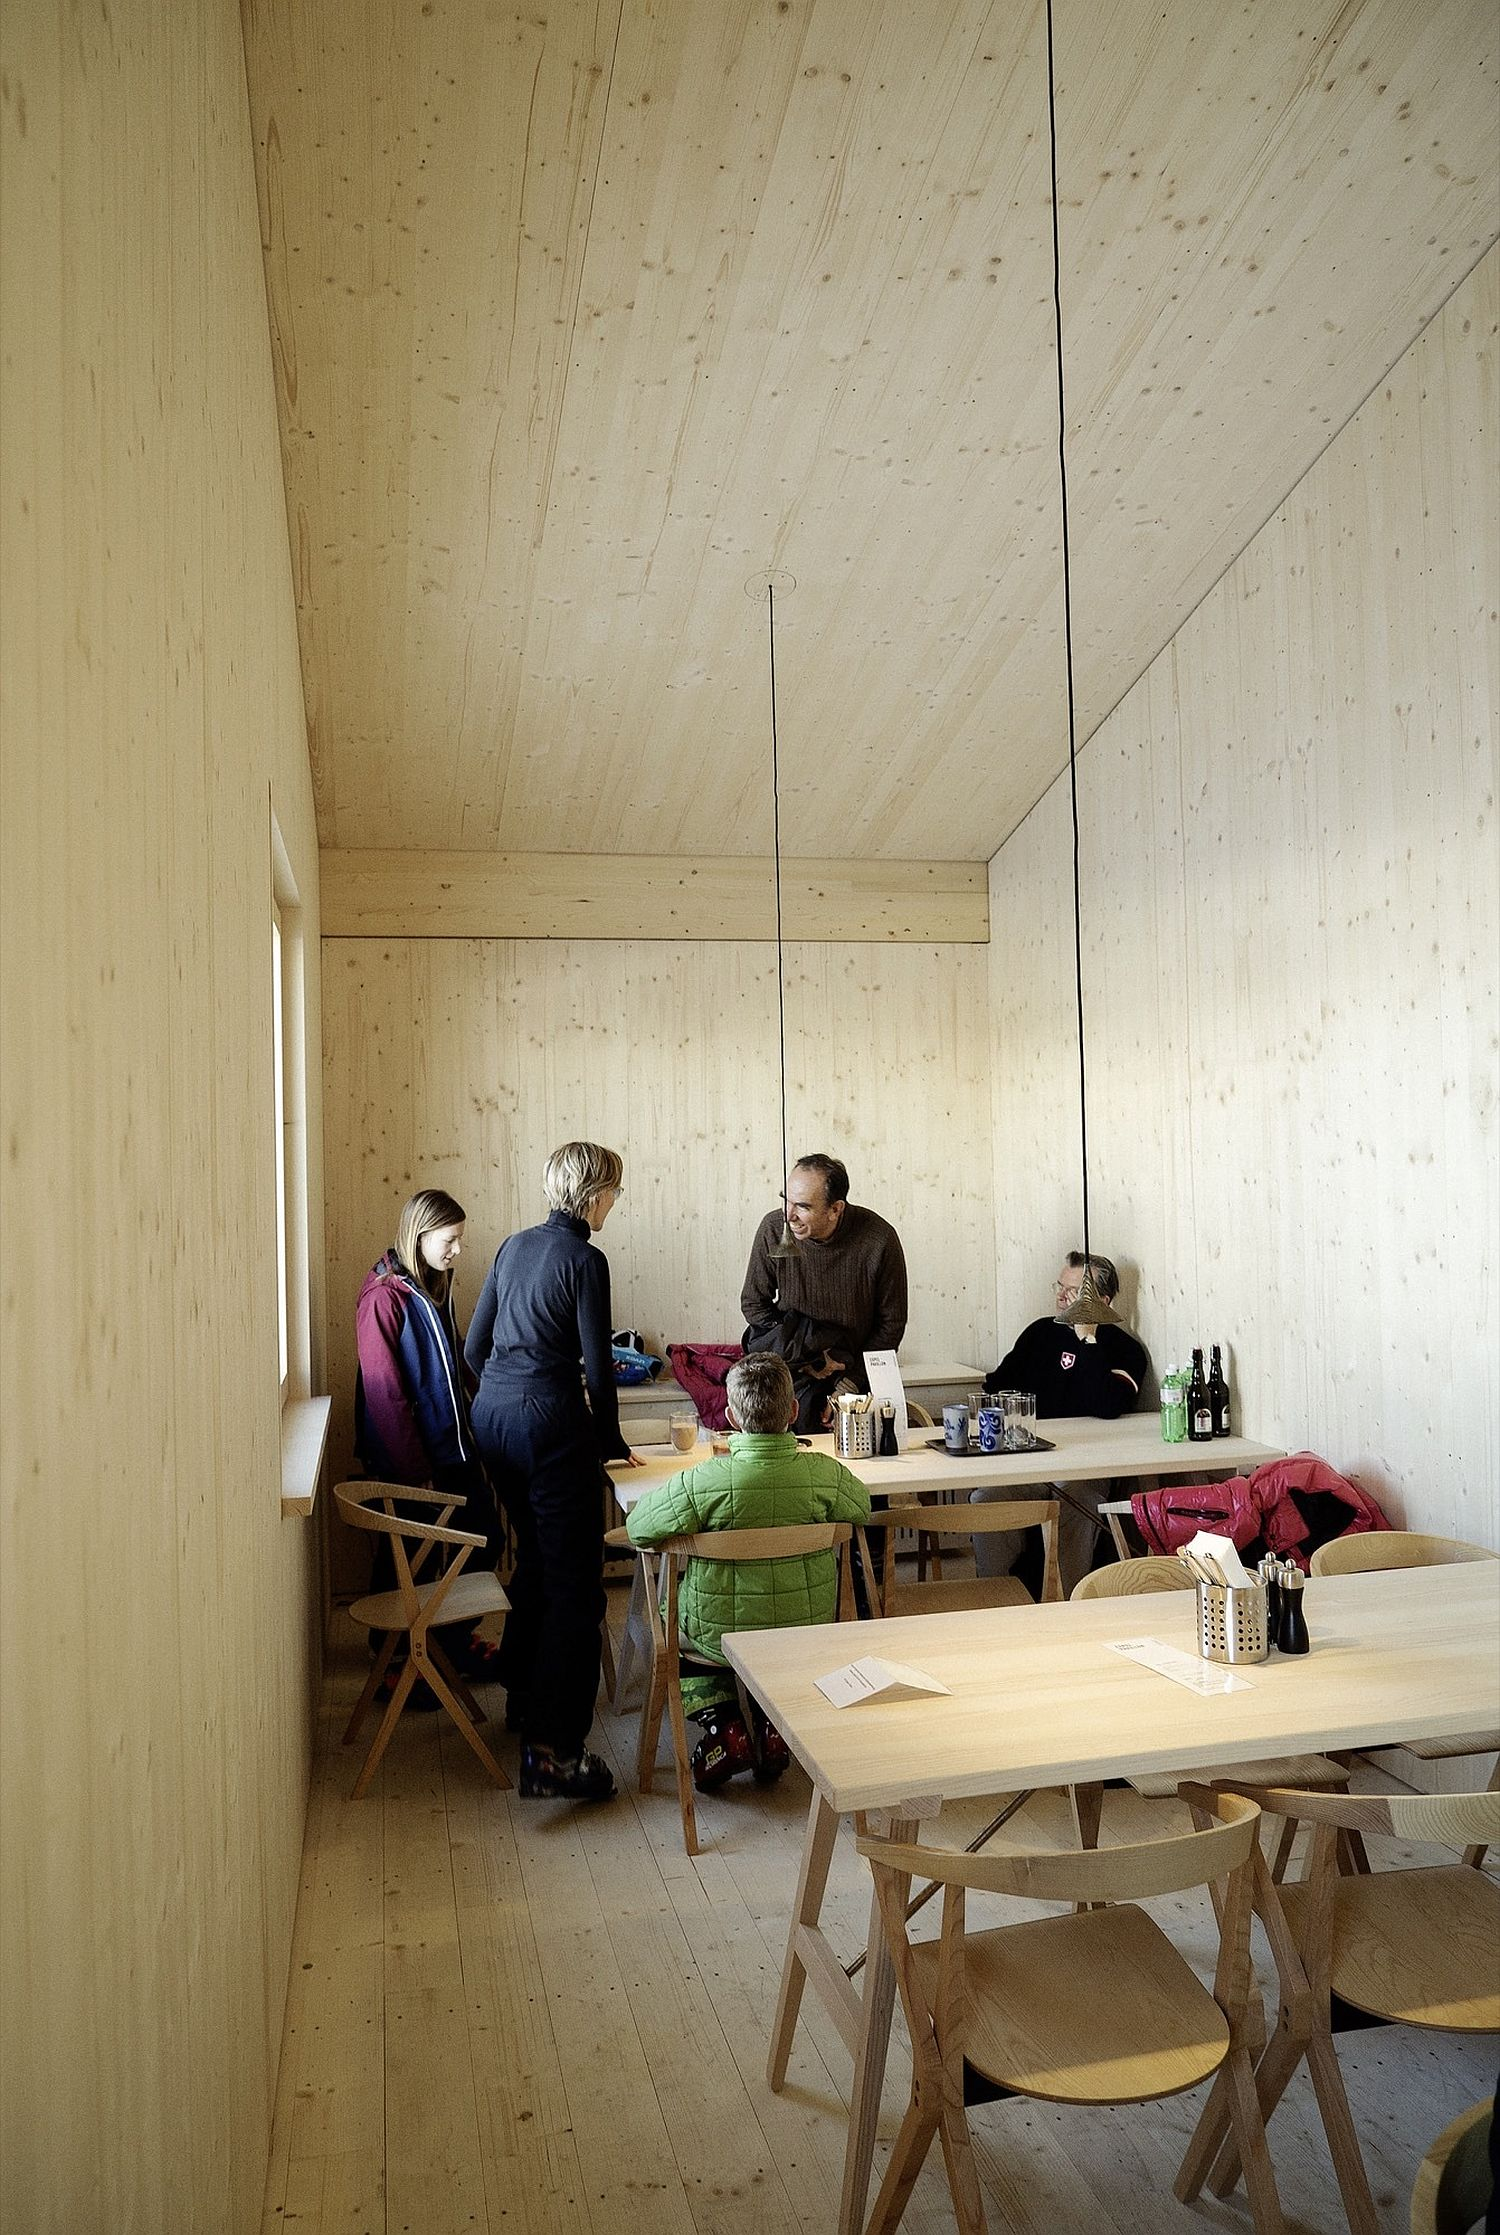 Tiny-cabin-in-wood-offers-shelter-on-the-ski-slopes